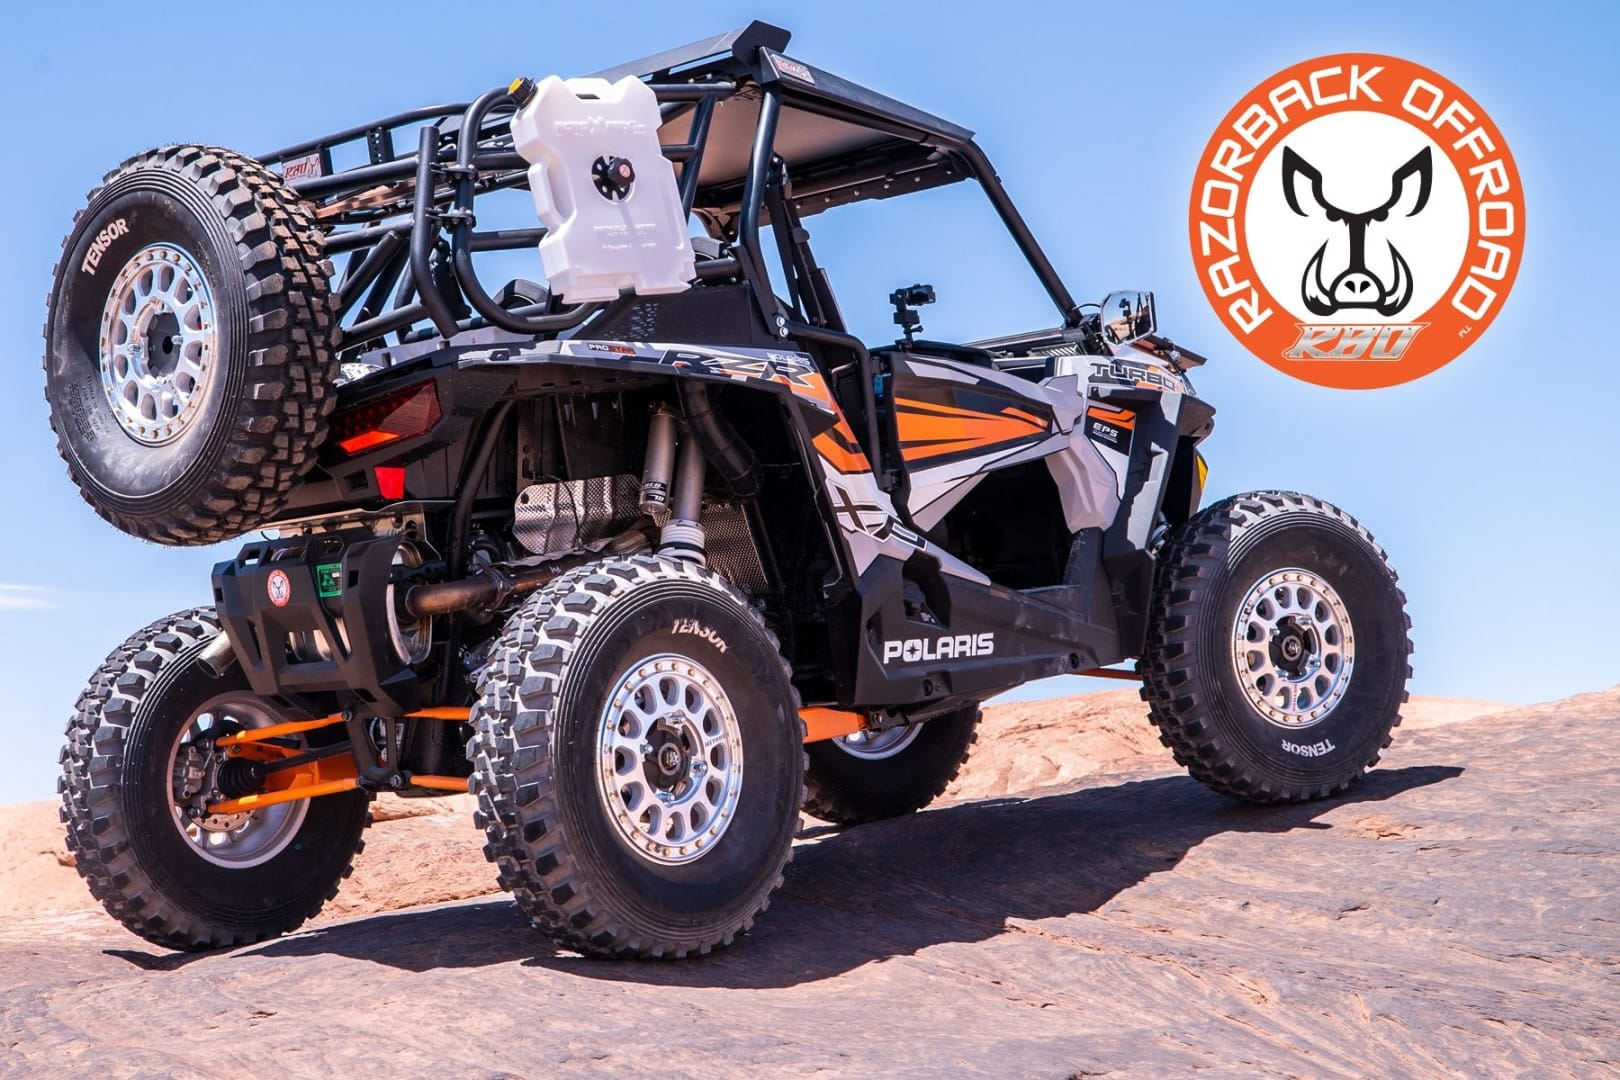 Polaris_RZR_1000_Moab_Cargo_Rack_Razorback_Offroad_RBO_Rock_Crawling_Side_By_Side_X_1-1